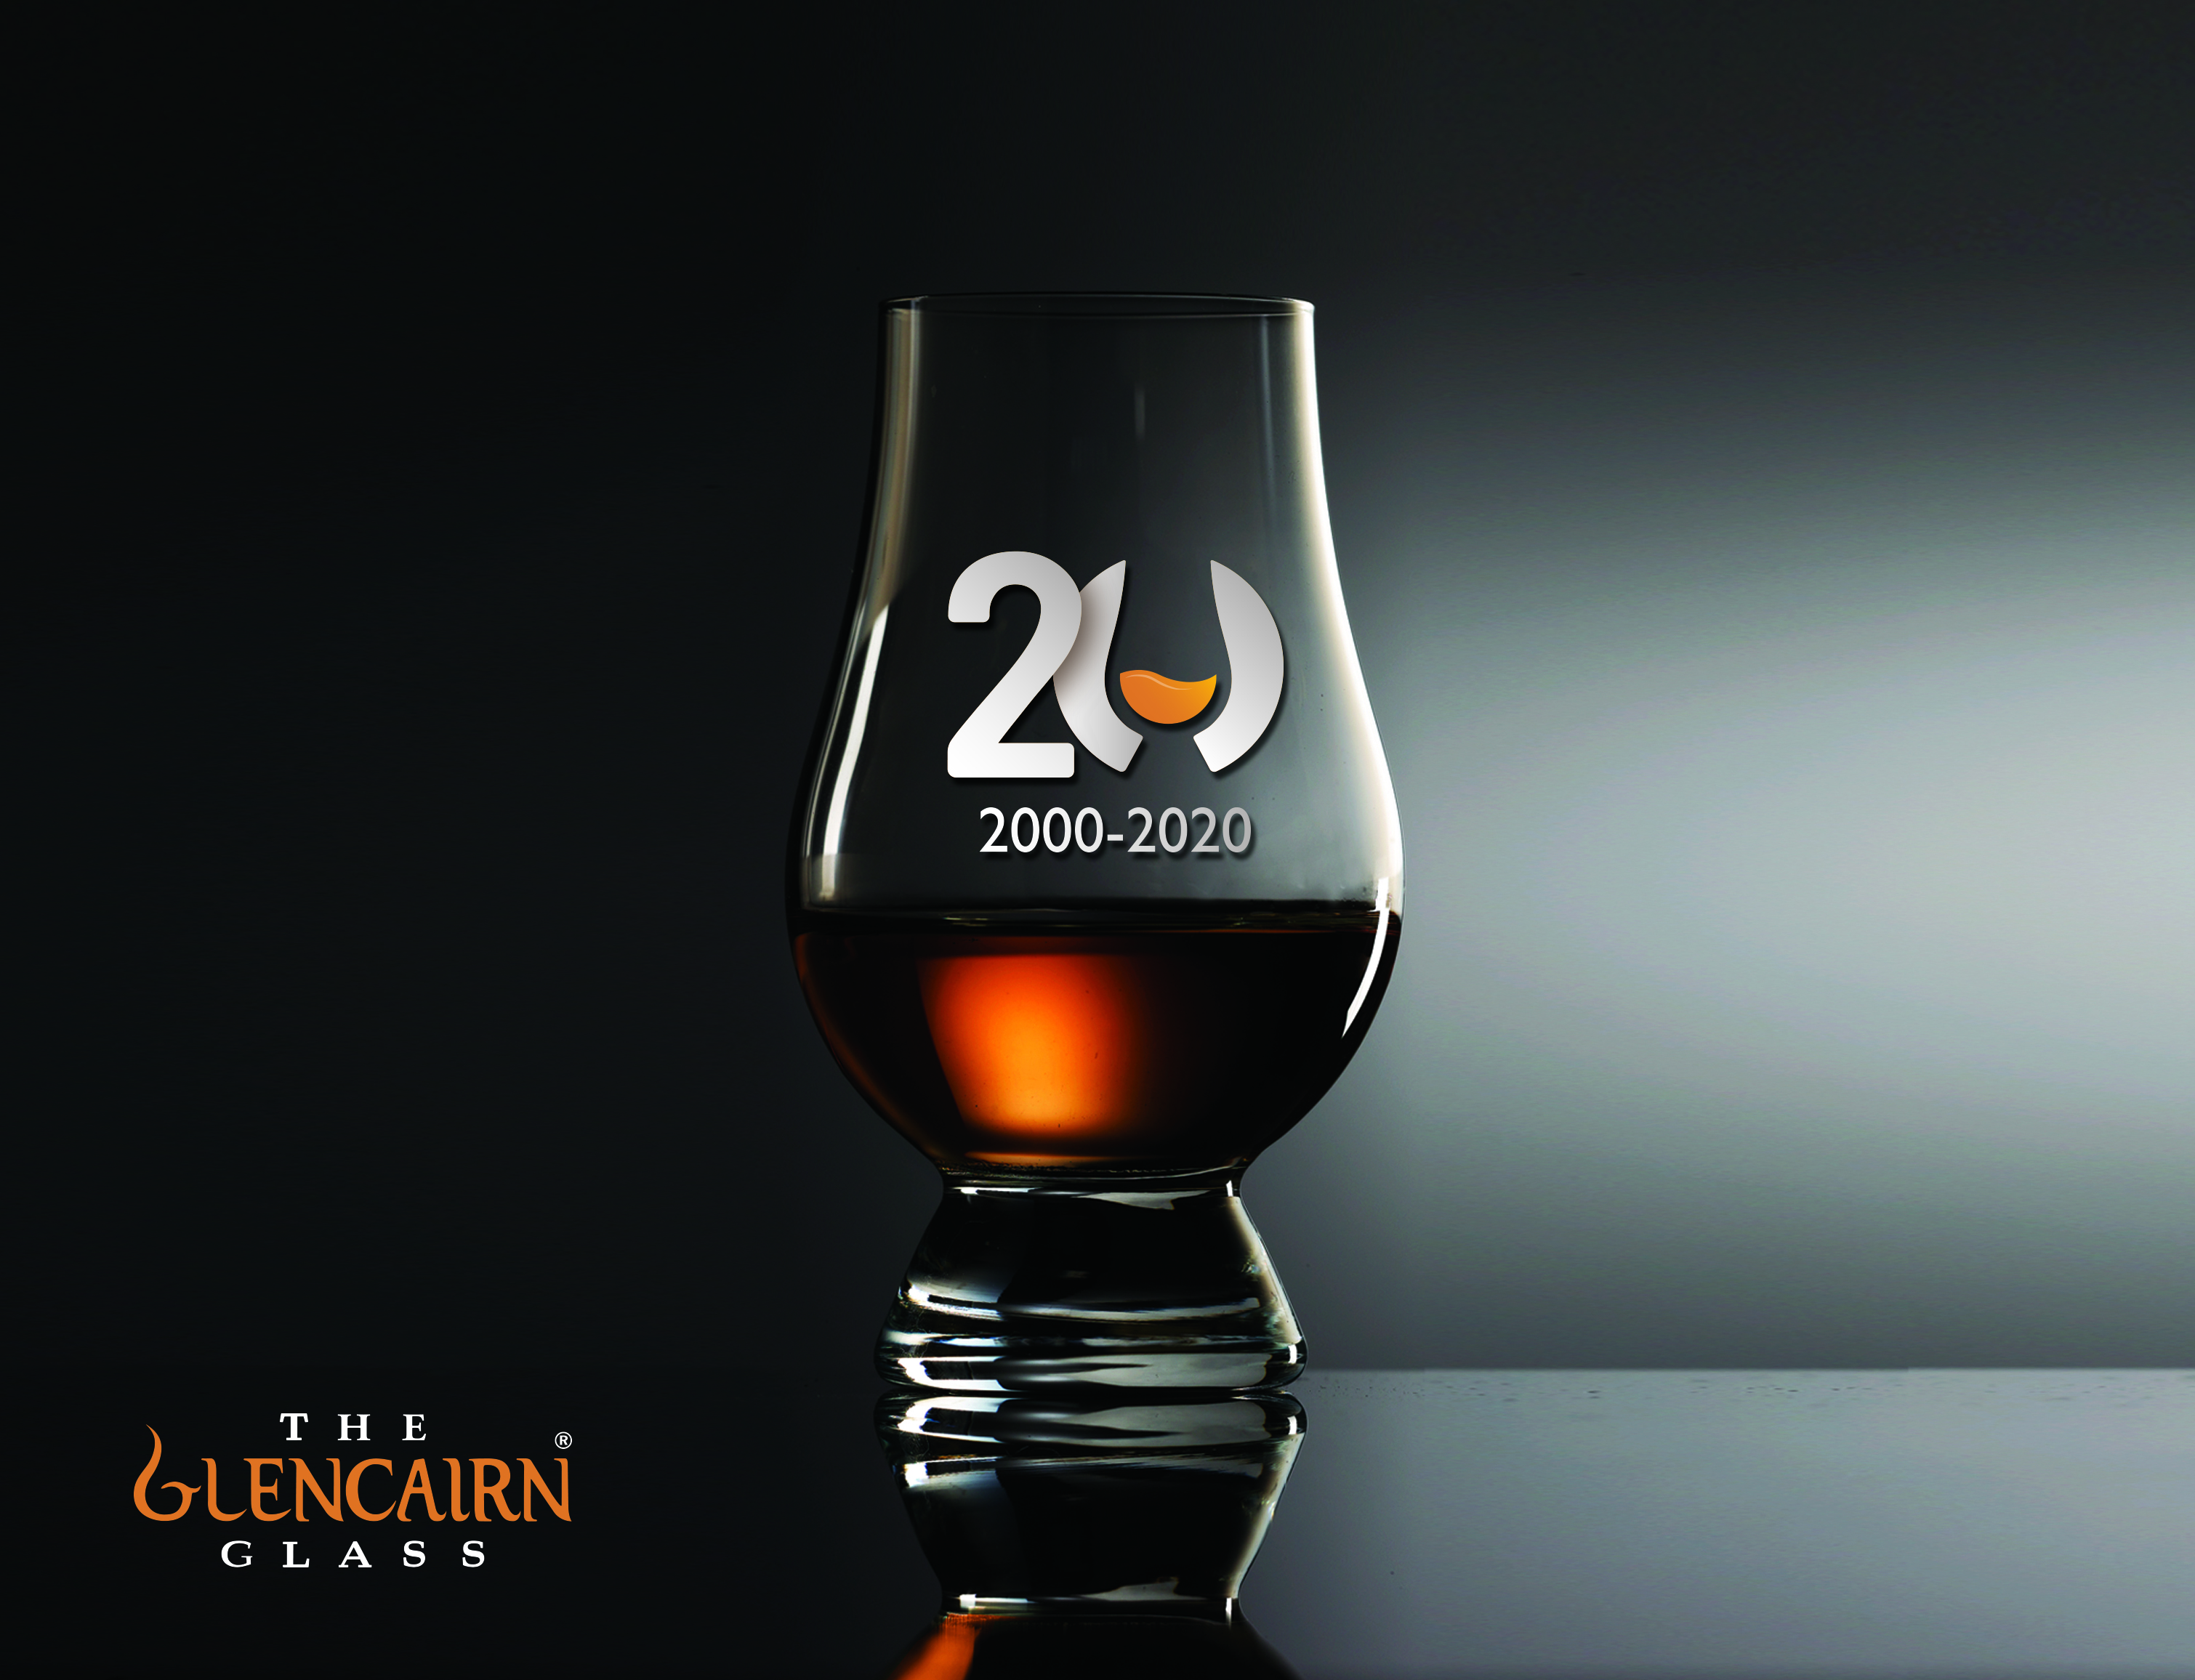 Glencairn Glass with 20th anniversary logo.